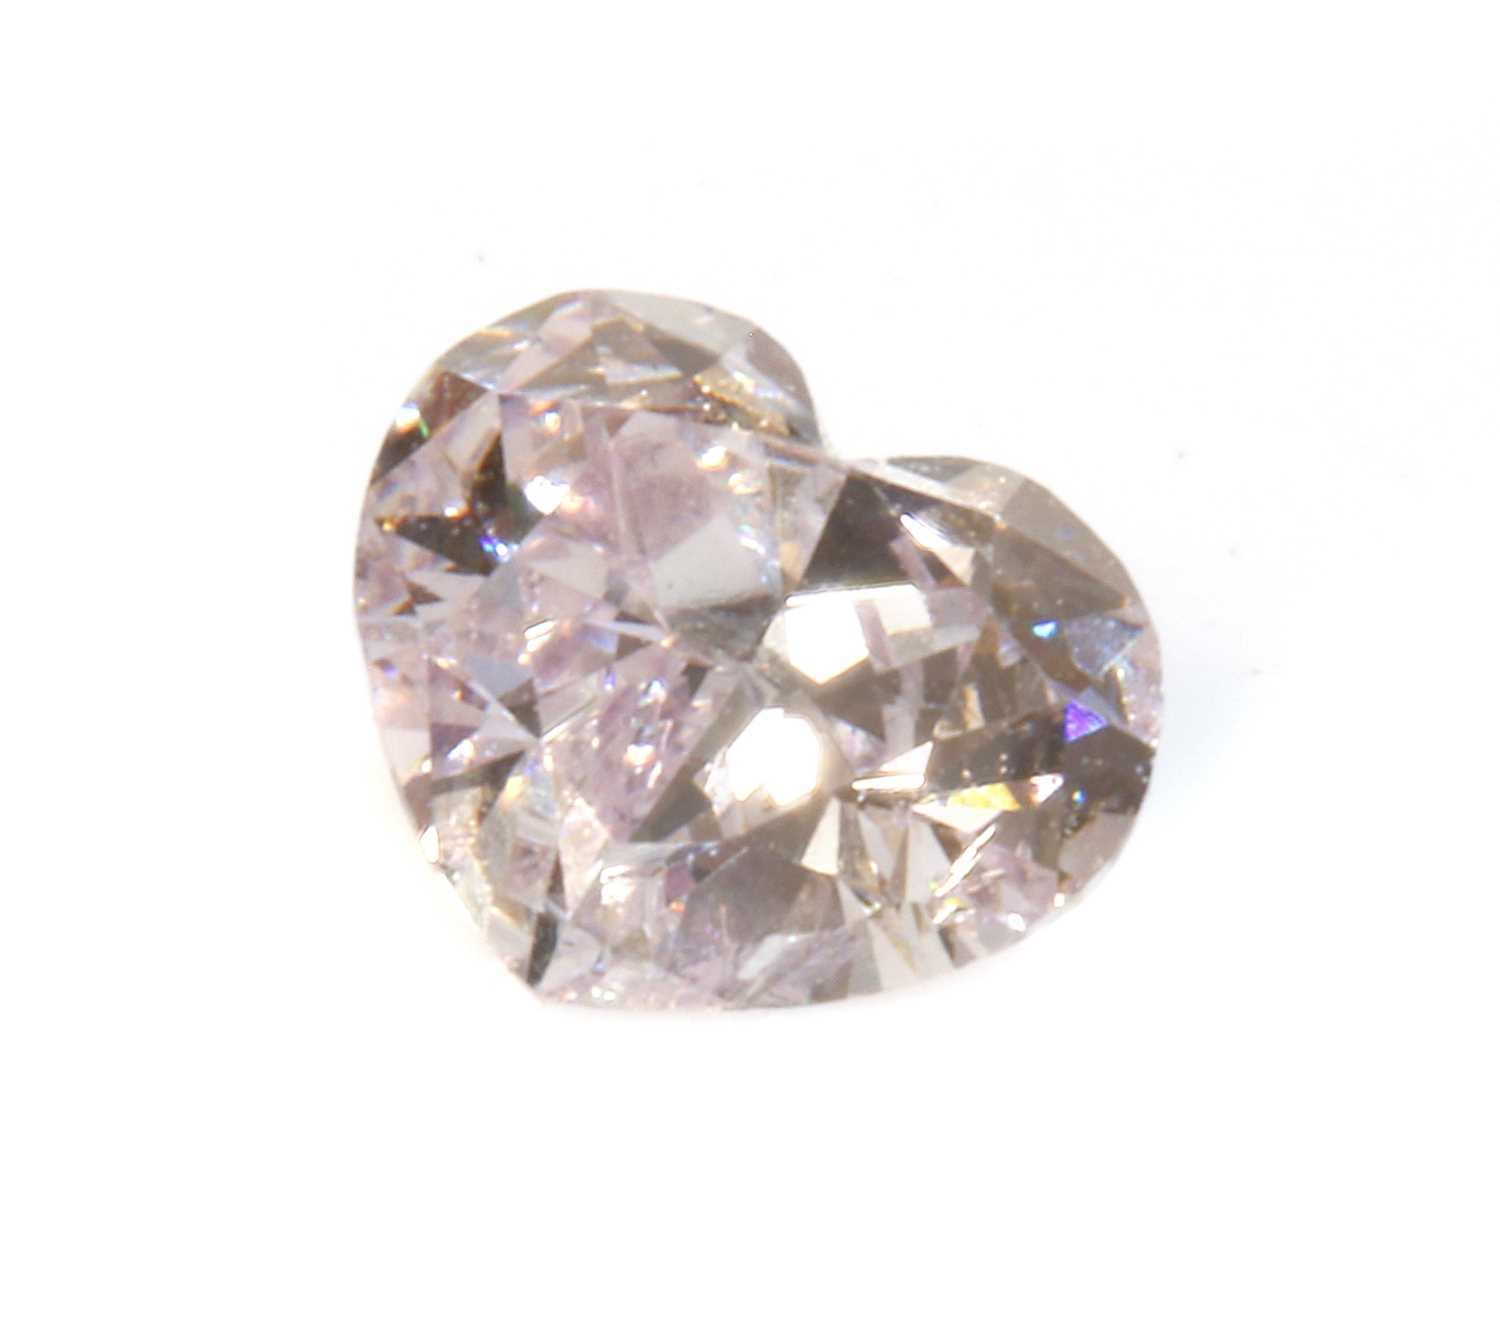 An unmounted heart shaped brilliant cut diamond, - Image 2 of 2